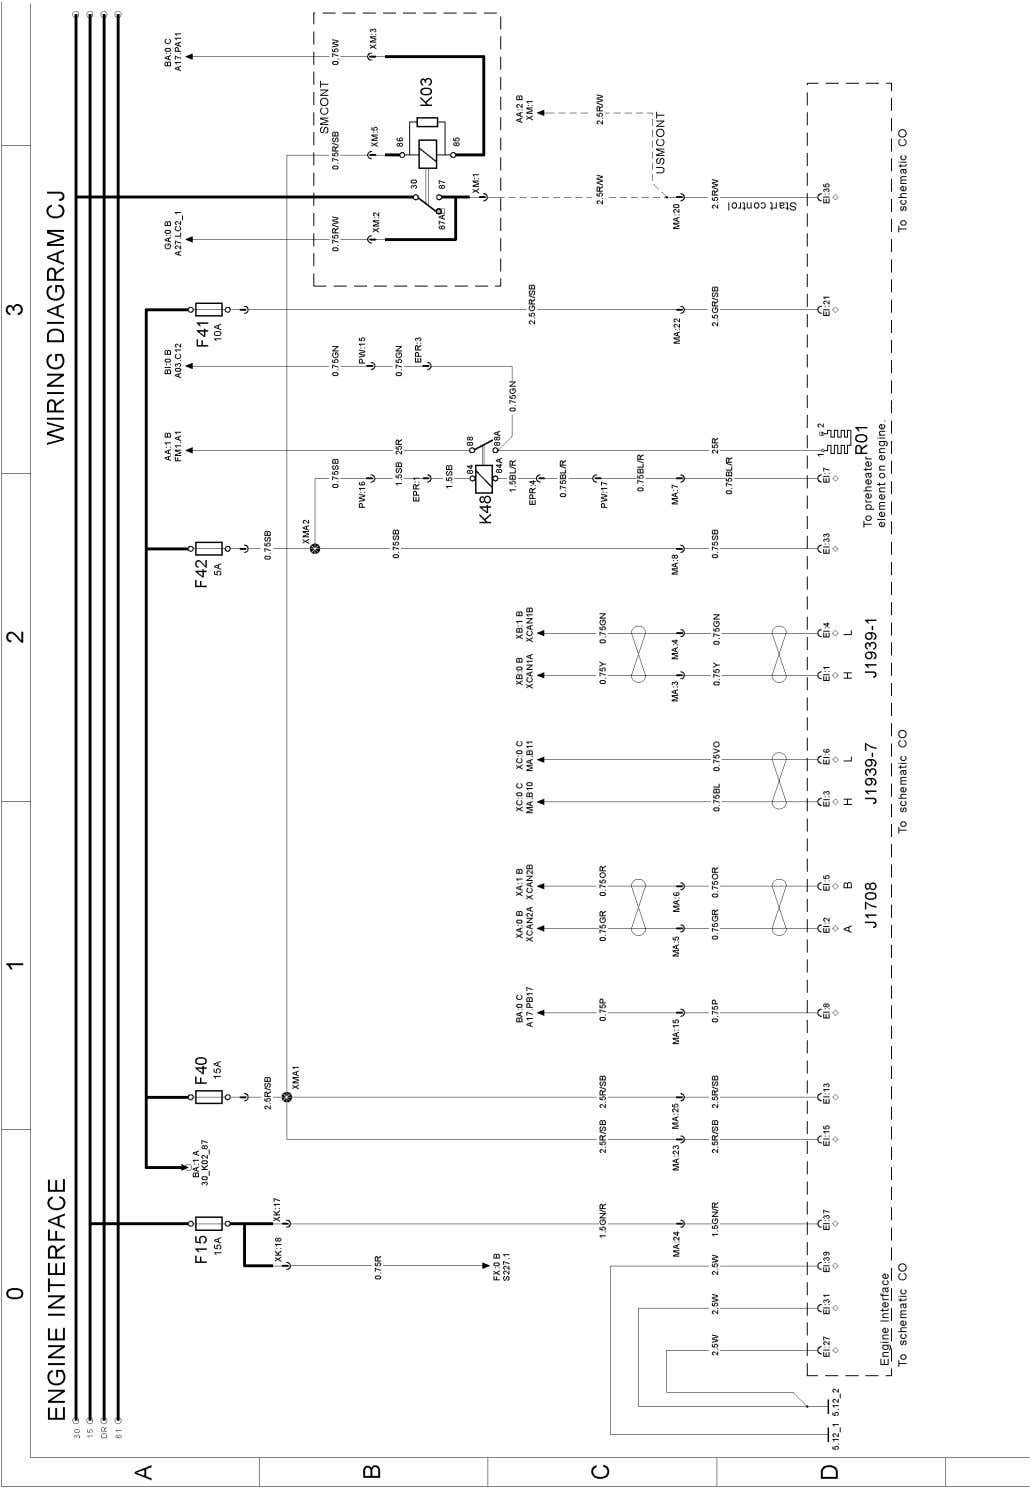 T3059893 Wiring diagram Page 21 (298)